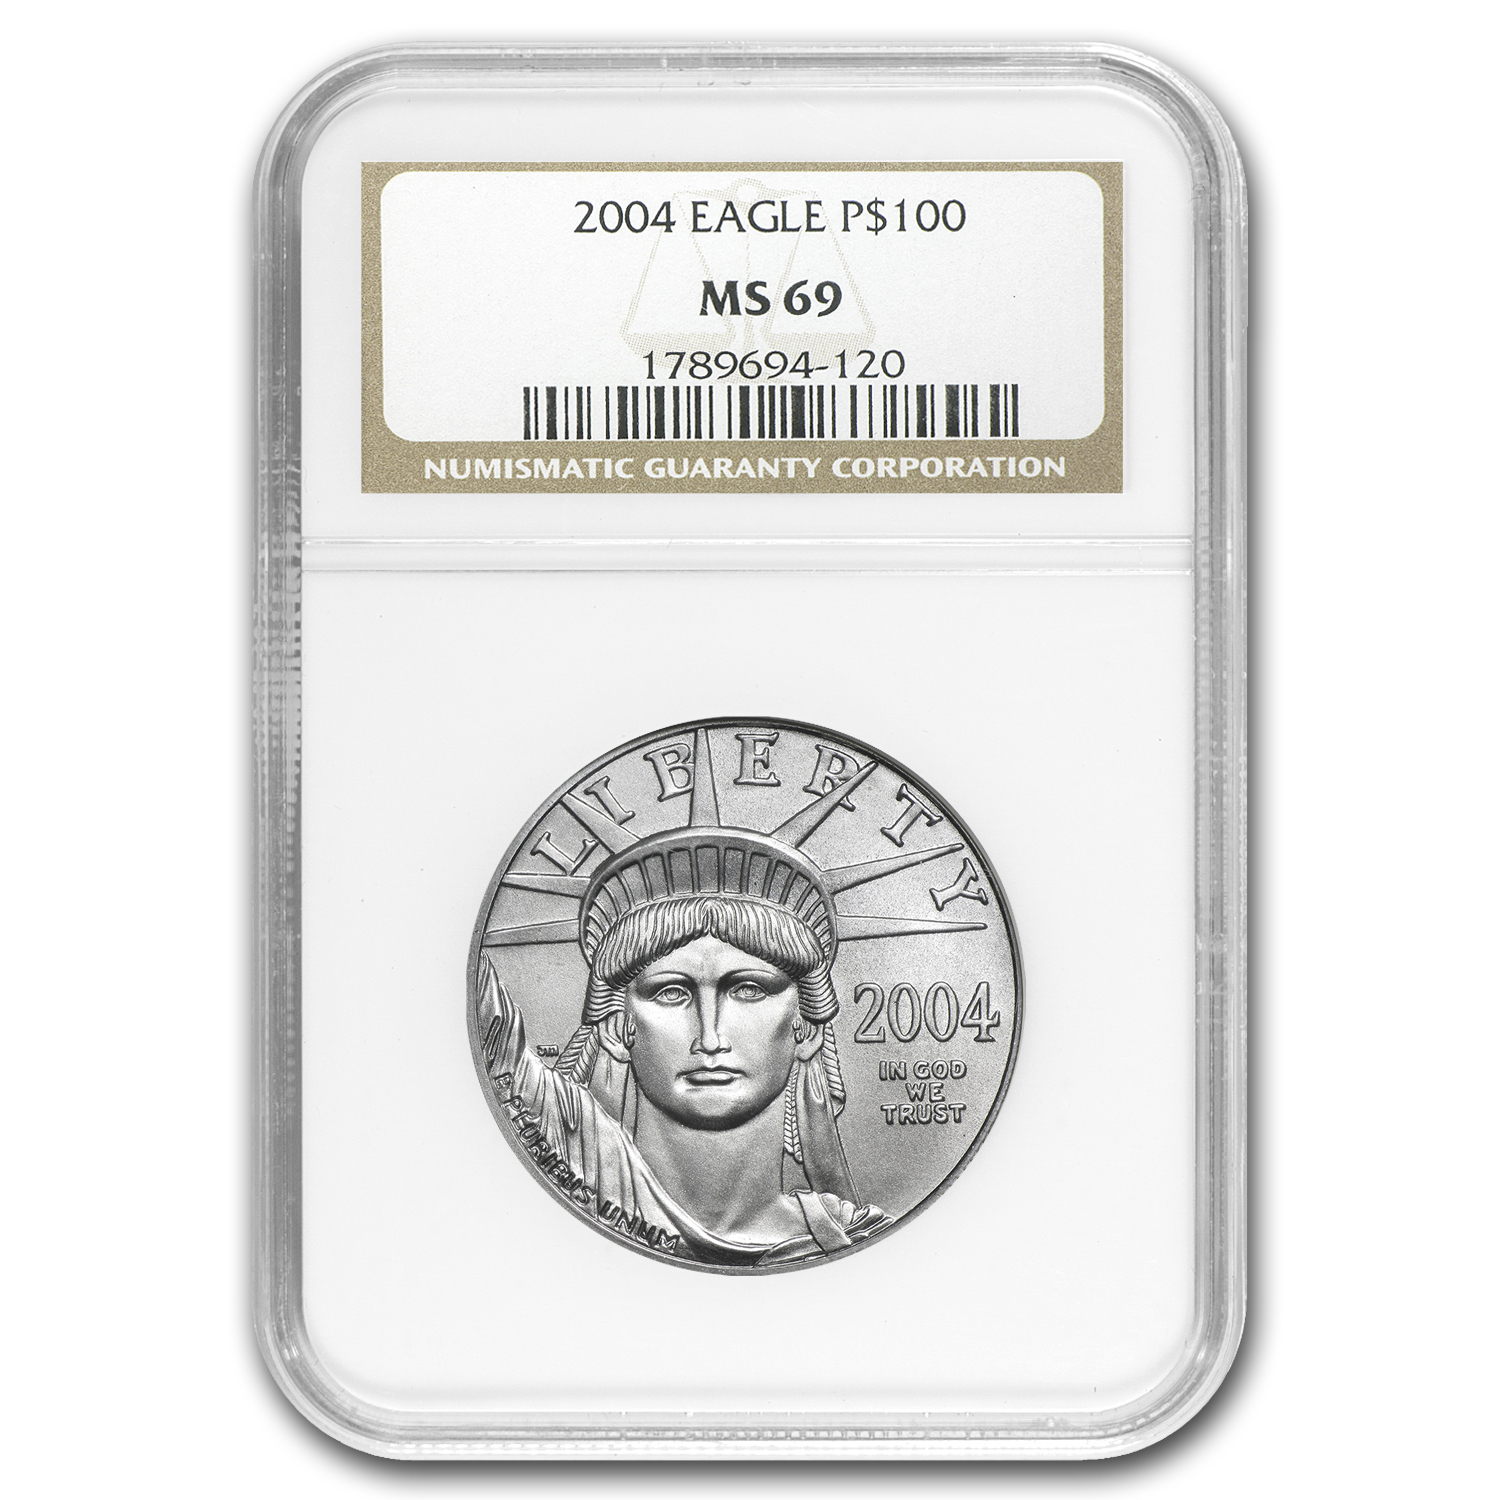 2004 1 oz Platinum American Eagle MS-69 NGC